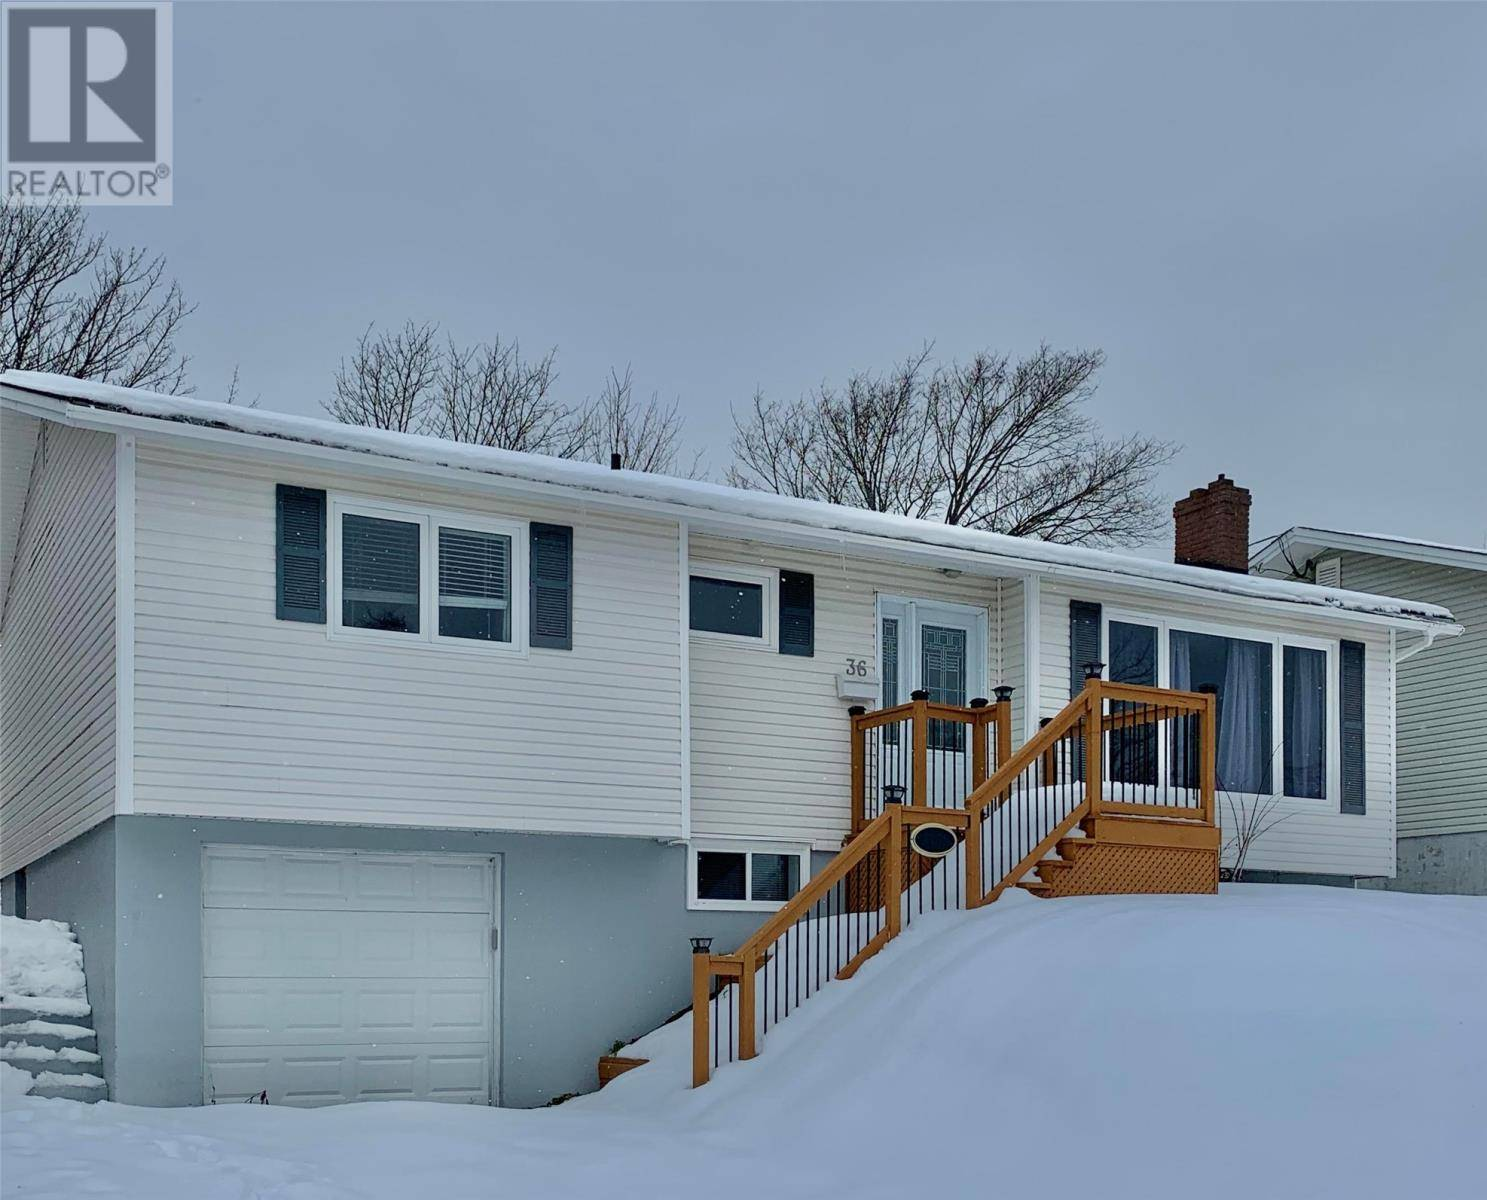 House for sale at 36 Vancouver St St. John's Newfoundland - MLS: 1198255